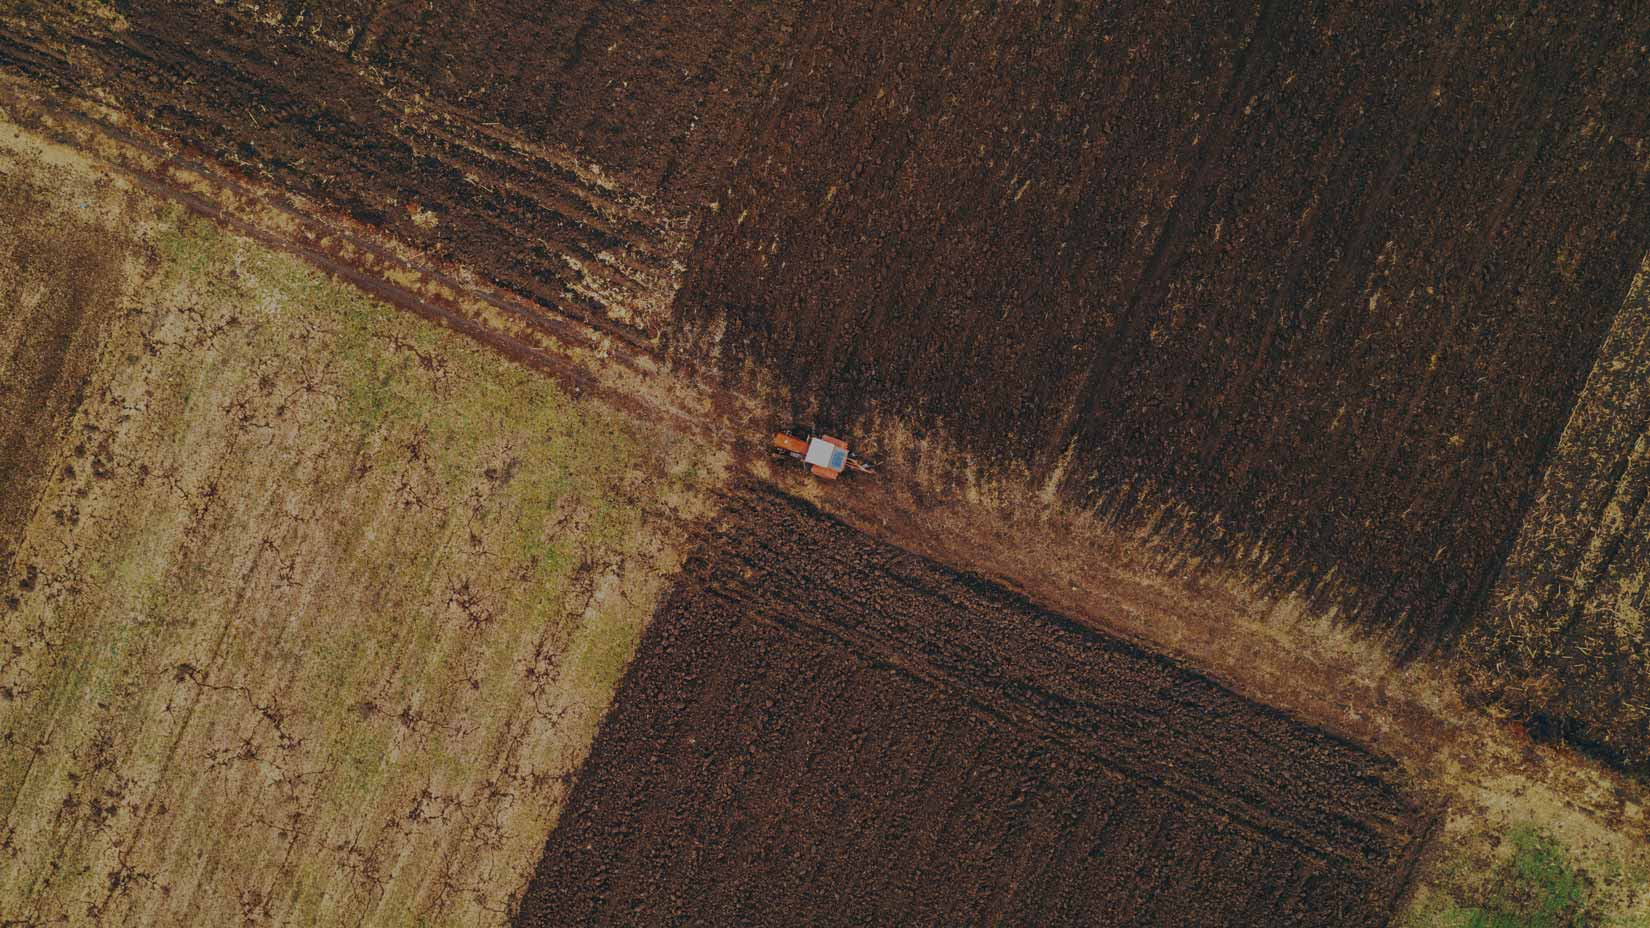 cquest-aerial-view-of-agricultural-tractor-plowing-field-1-1.jpg